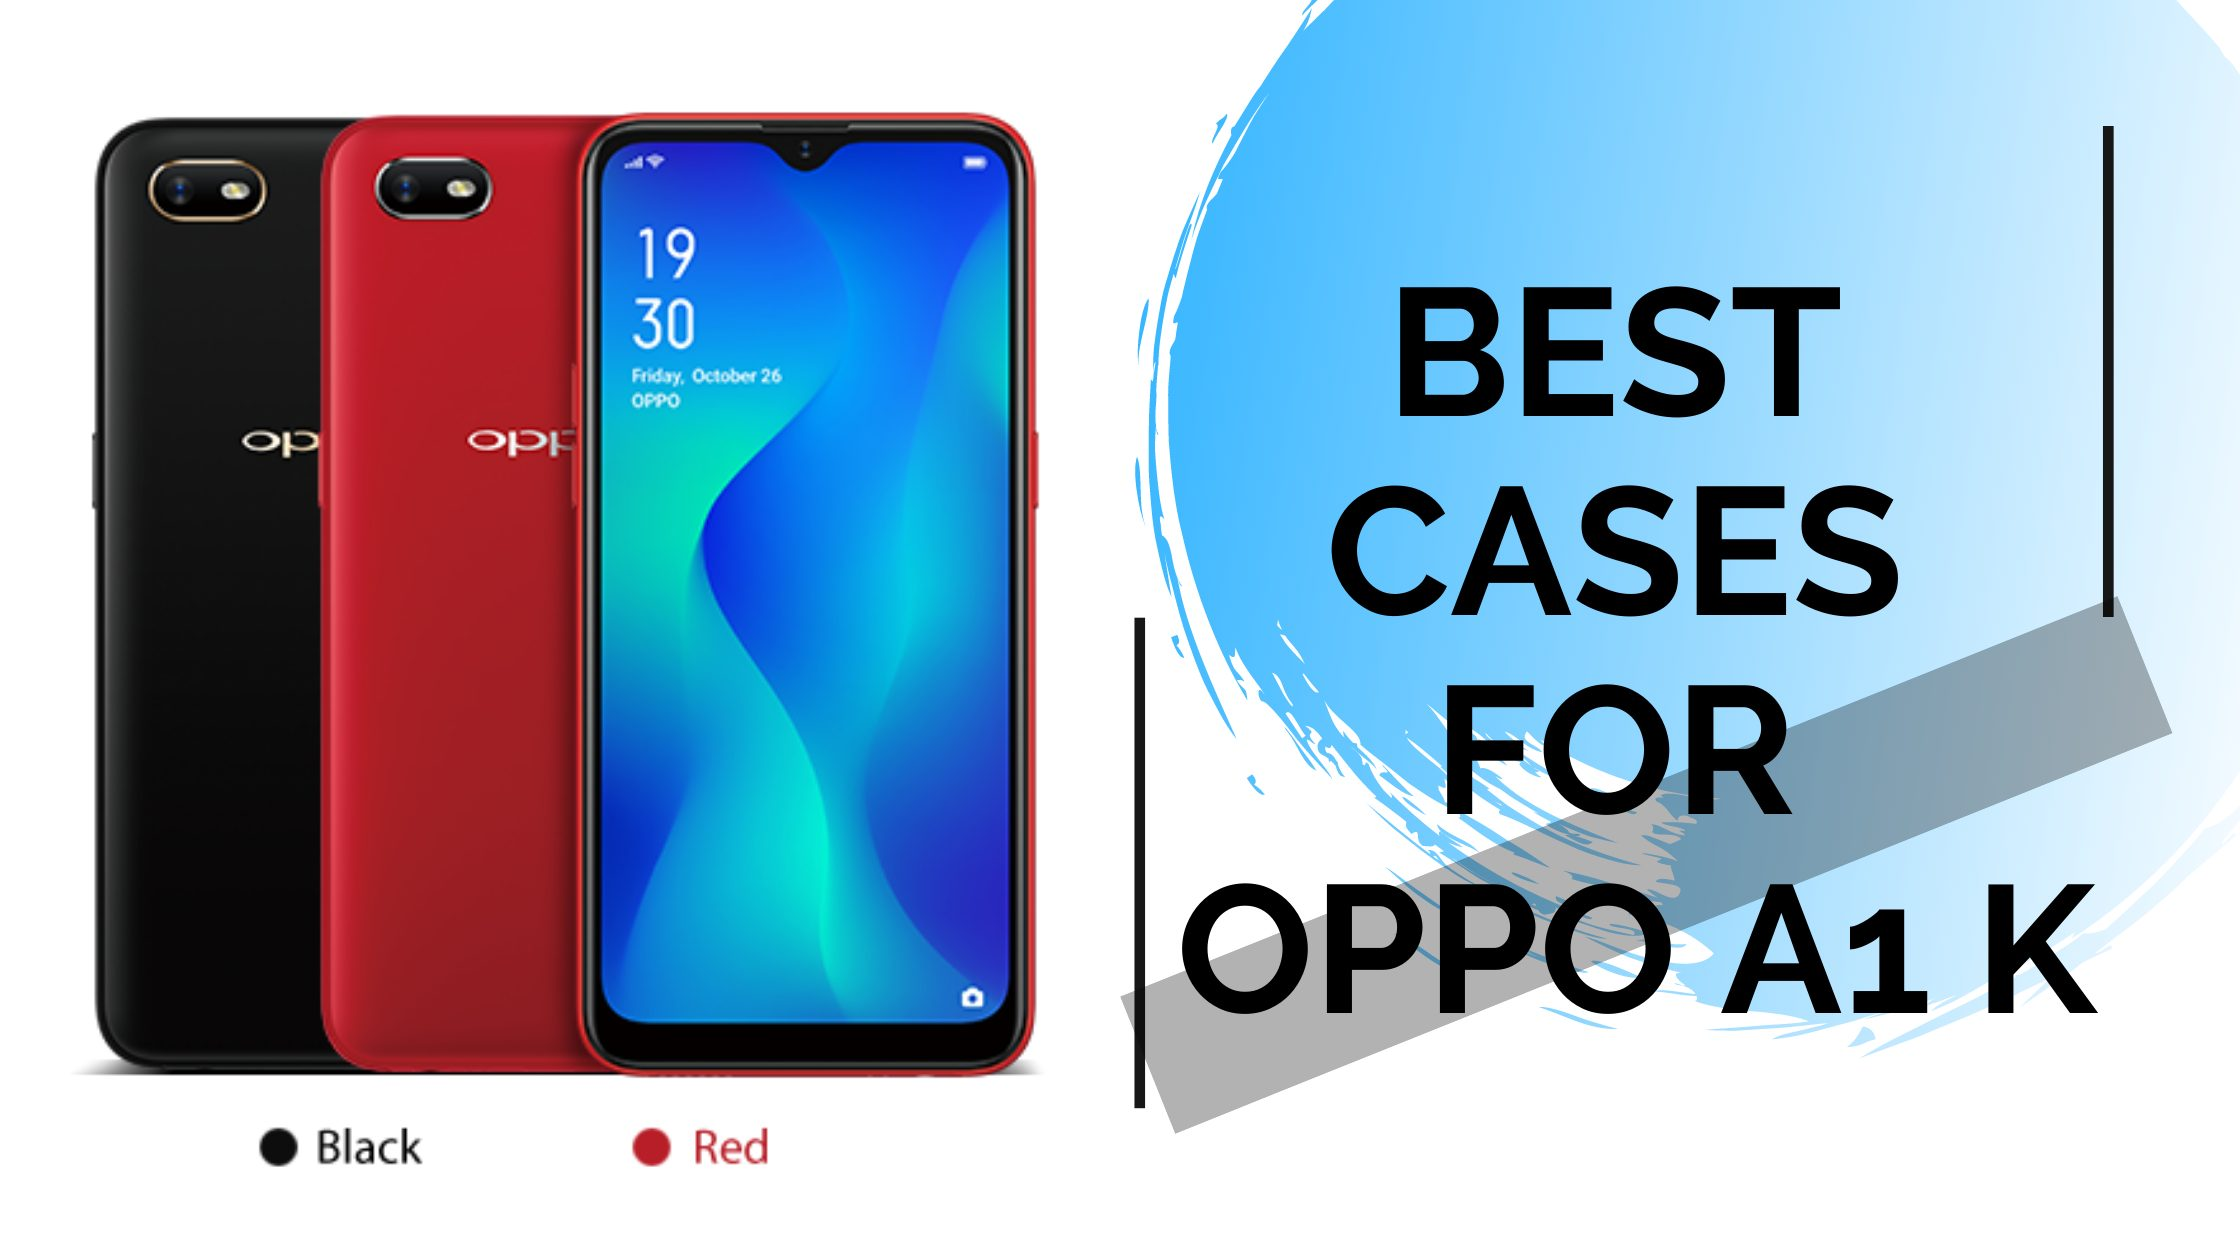 Oppo A1k Featured Image